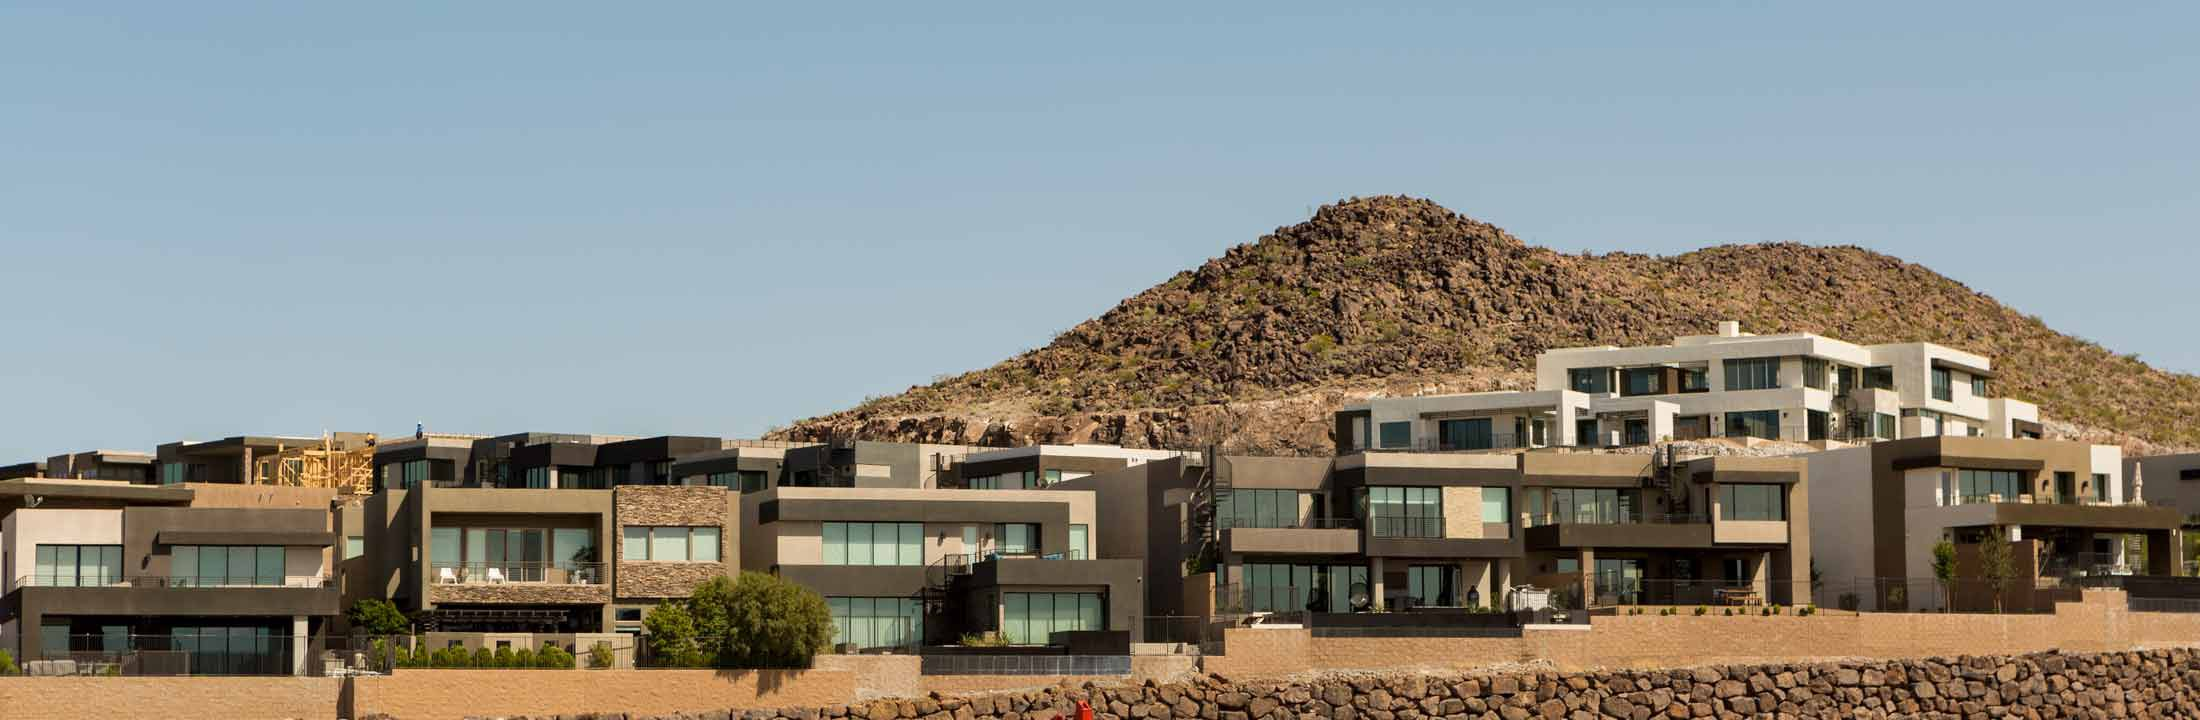 las-vegas-new-construction-homes-for-sale-henderson-re-max